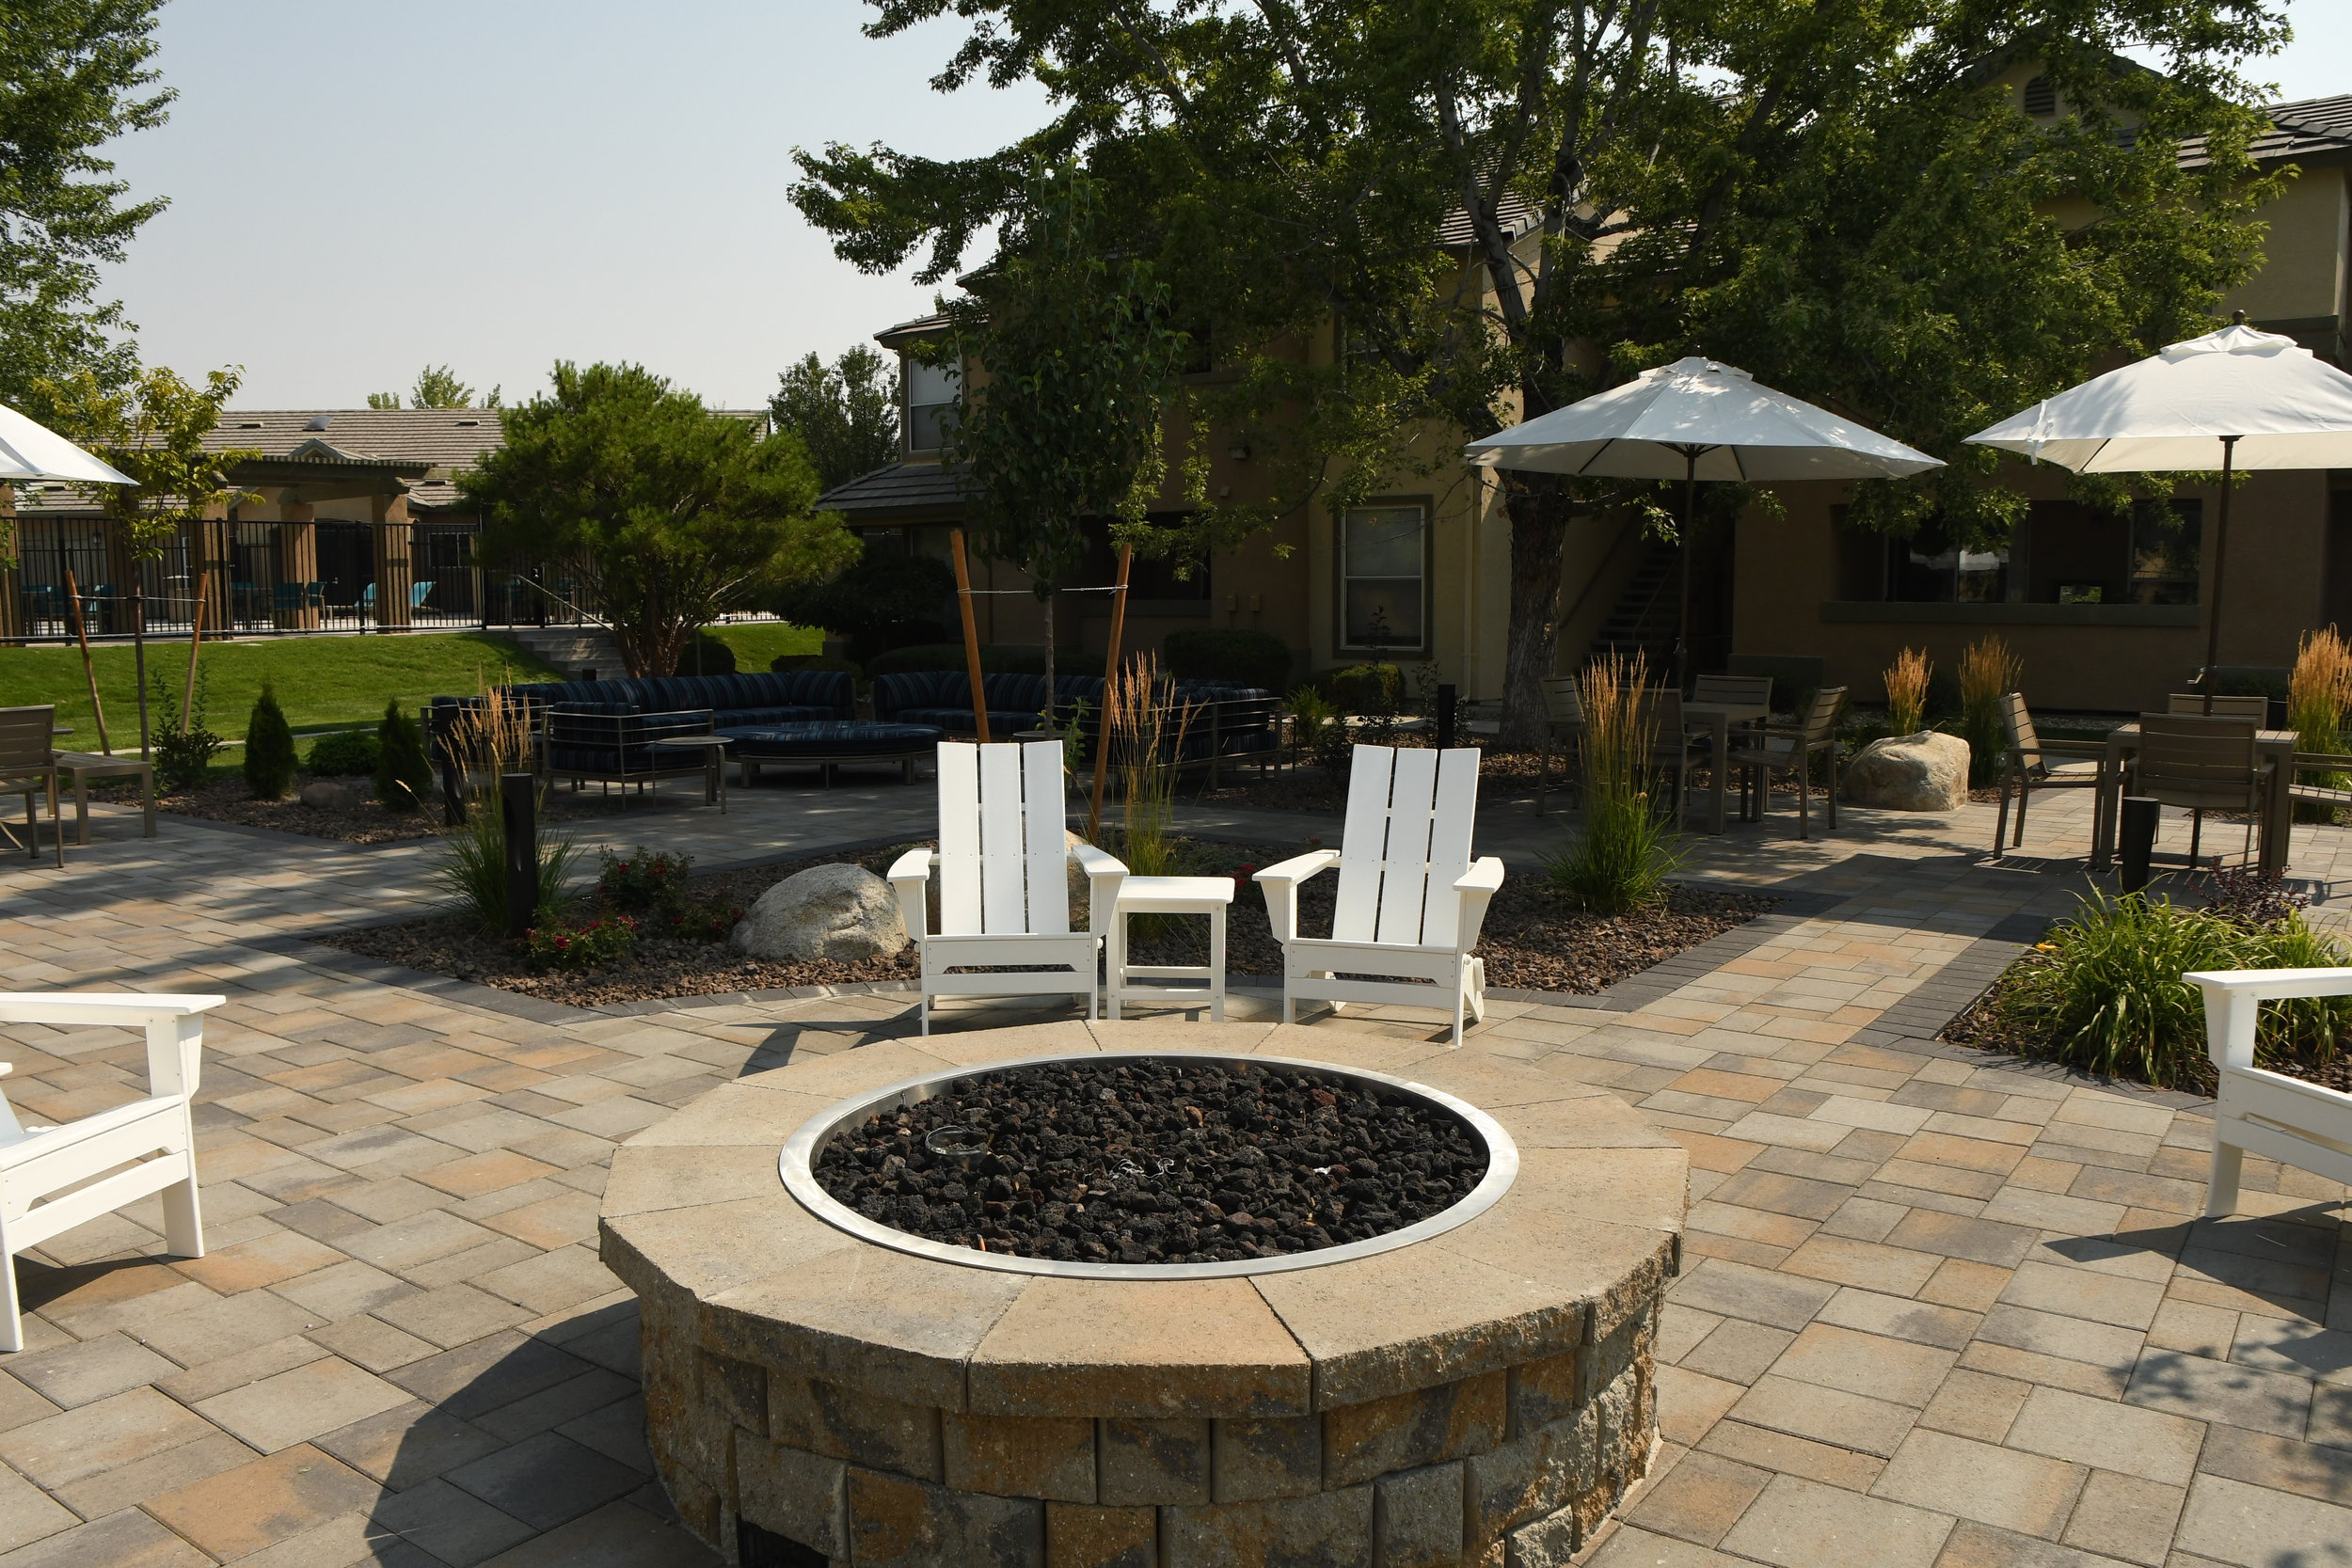 Patio pavers in Reno, NV and outdoor fireplace